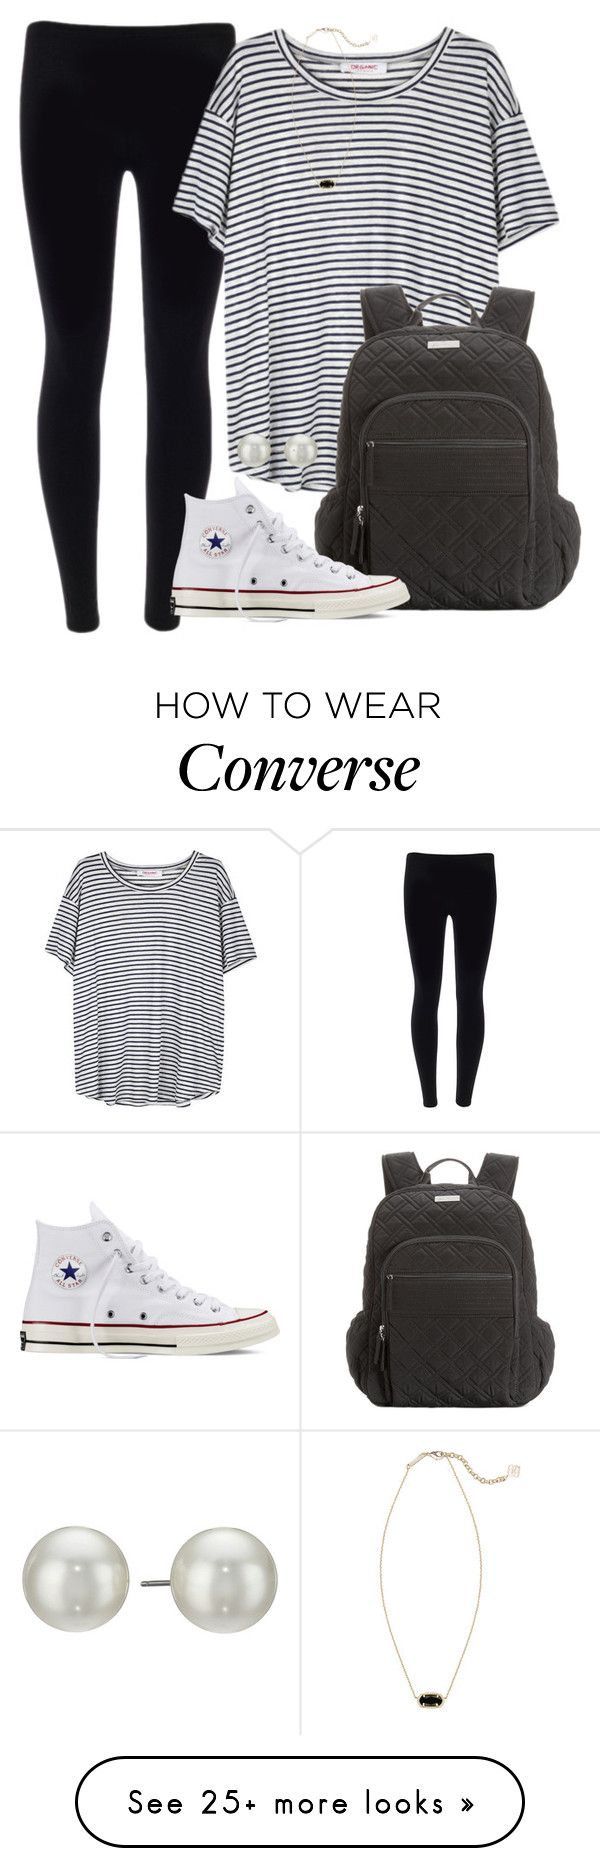 """Good morning guys!"" by abbybp42 on Polyvore featuring Organic by John Patrick, Kendra Scott, Vera Bradley, Converse and Kenneth Jay Lane"